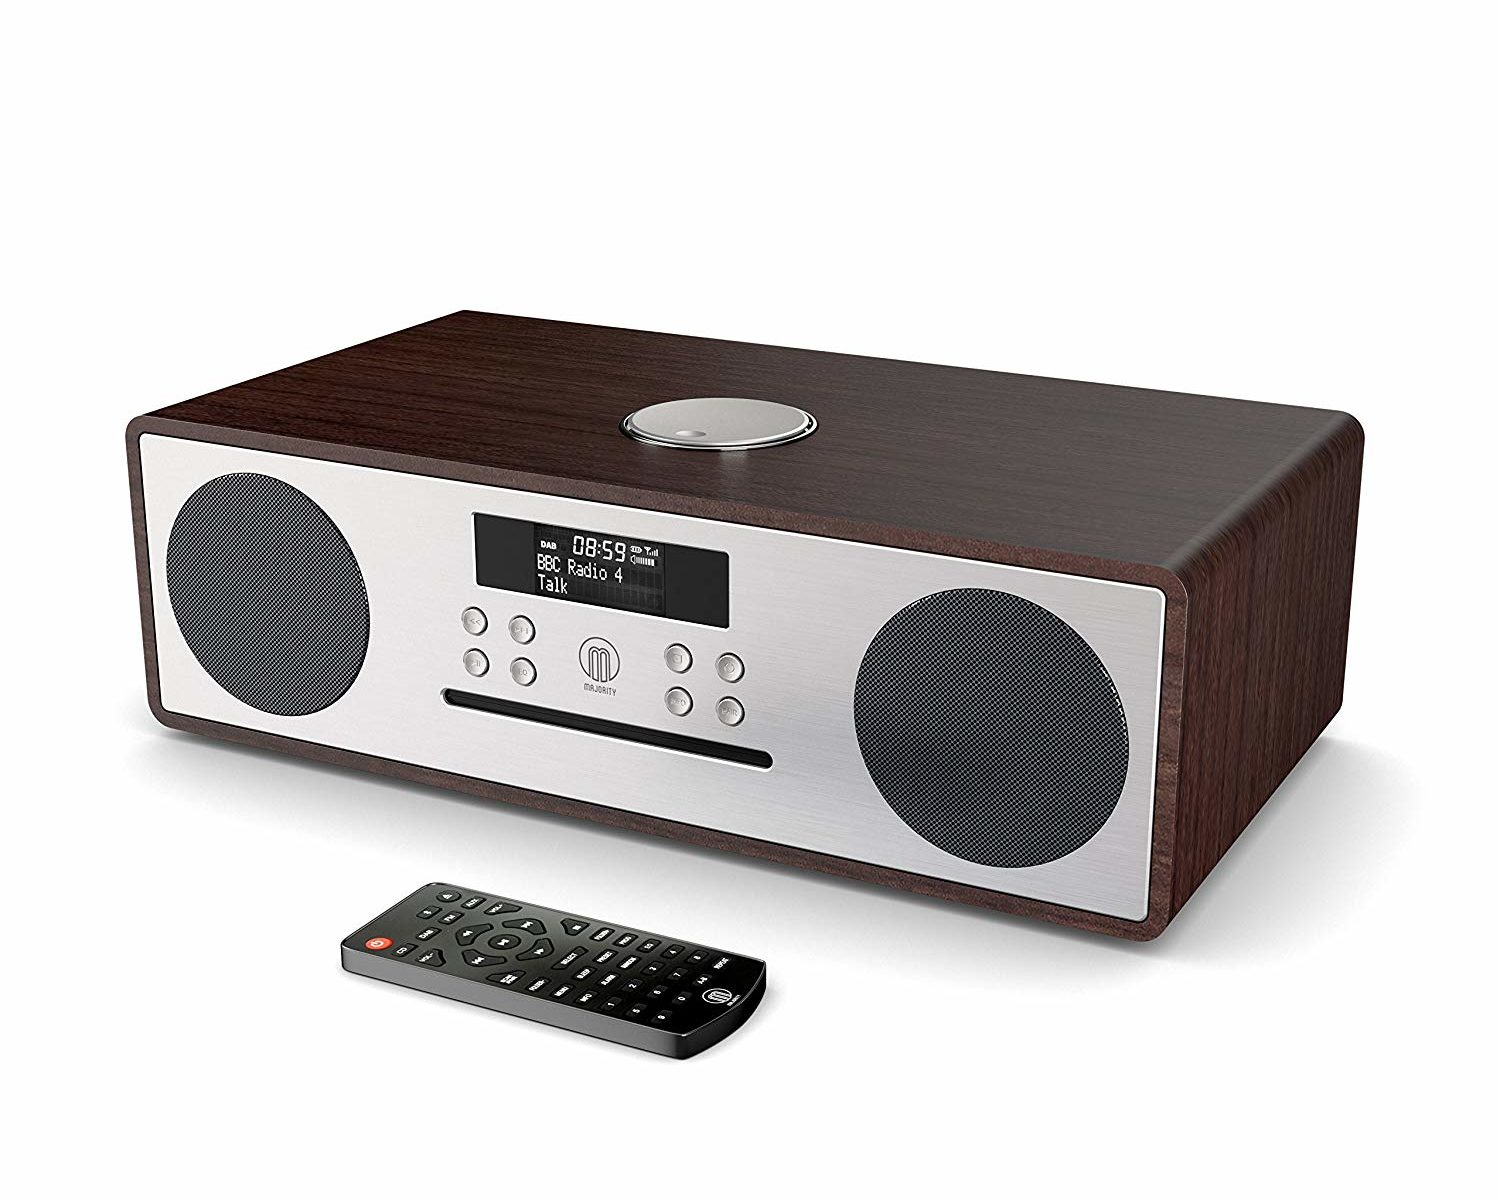 Majority Oakington DAB/DAB+ Digitales Radio, CD-Player, Bluetooth, Stereo-Lautsprechersystem